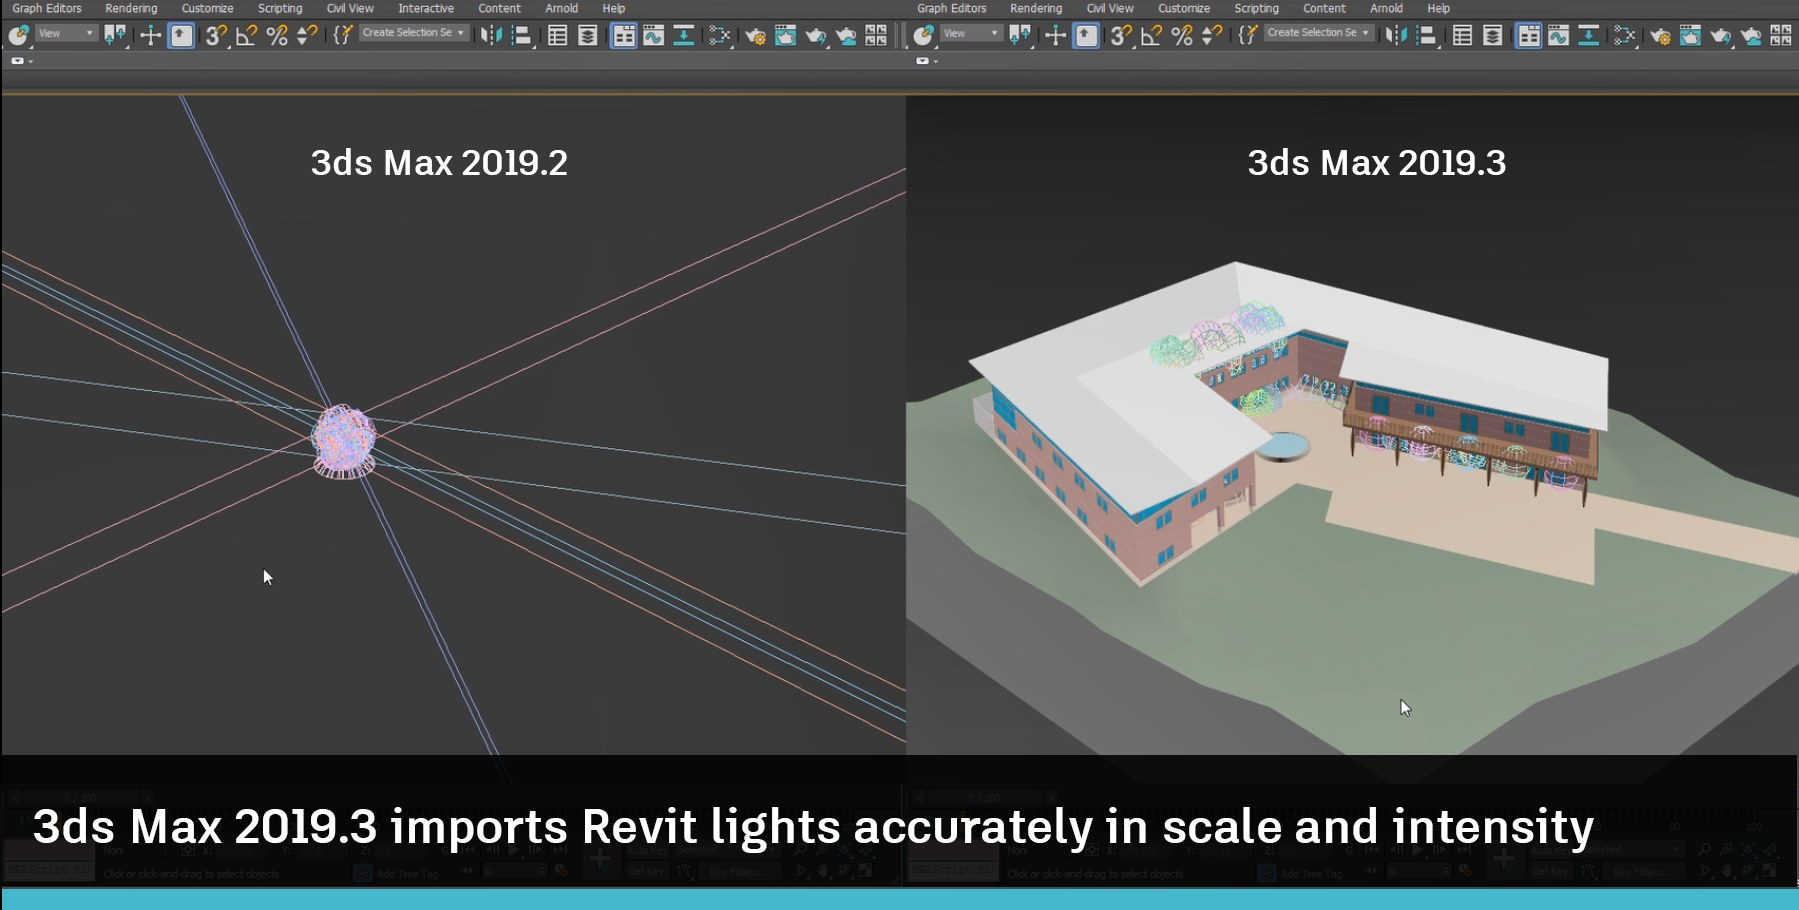 3ds Max 2019.3 Revit Light Import